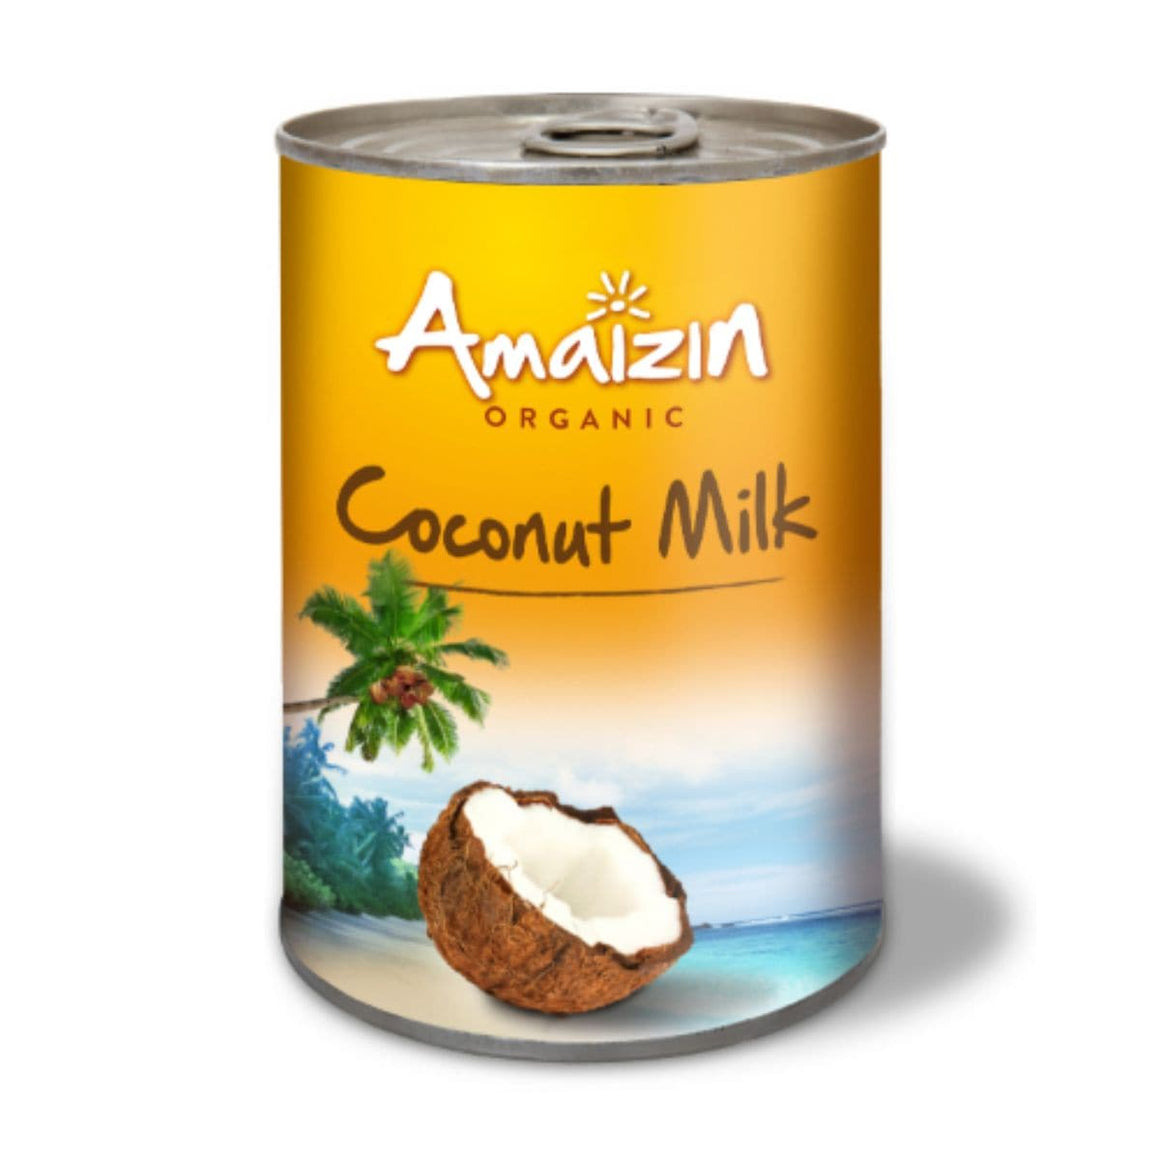 Amaizin Rich Organic Coconut Milk  - 400ml - SoulBia